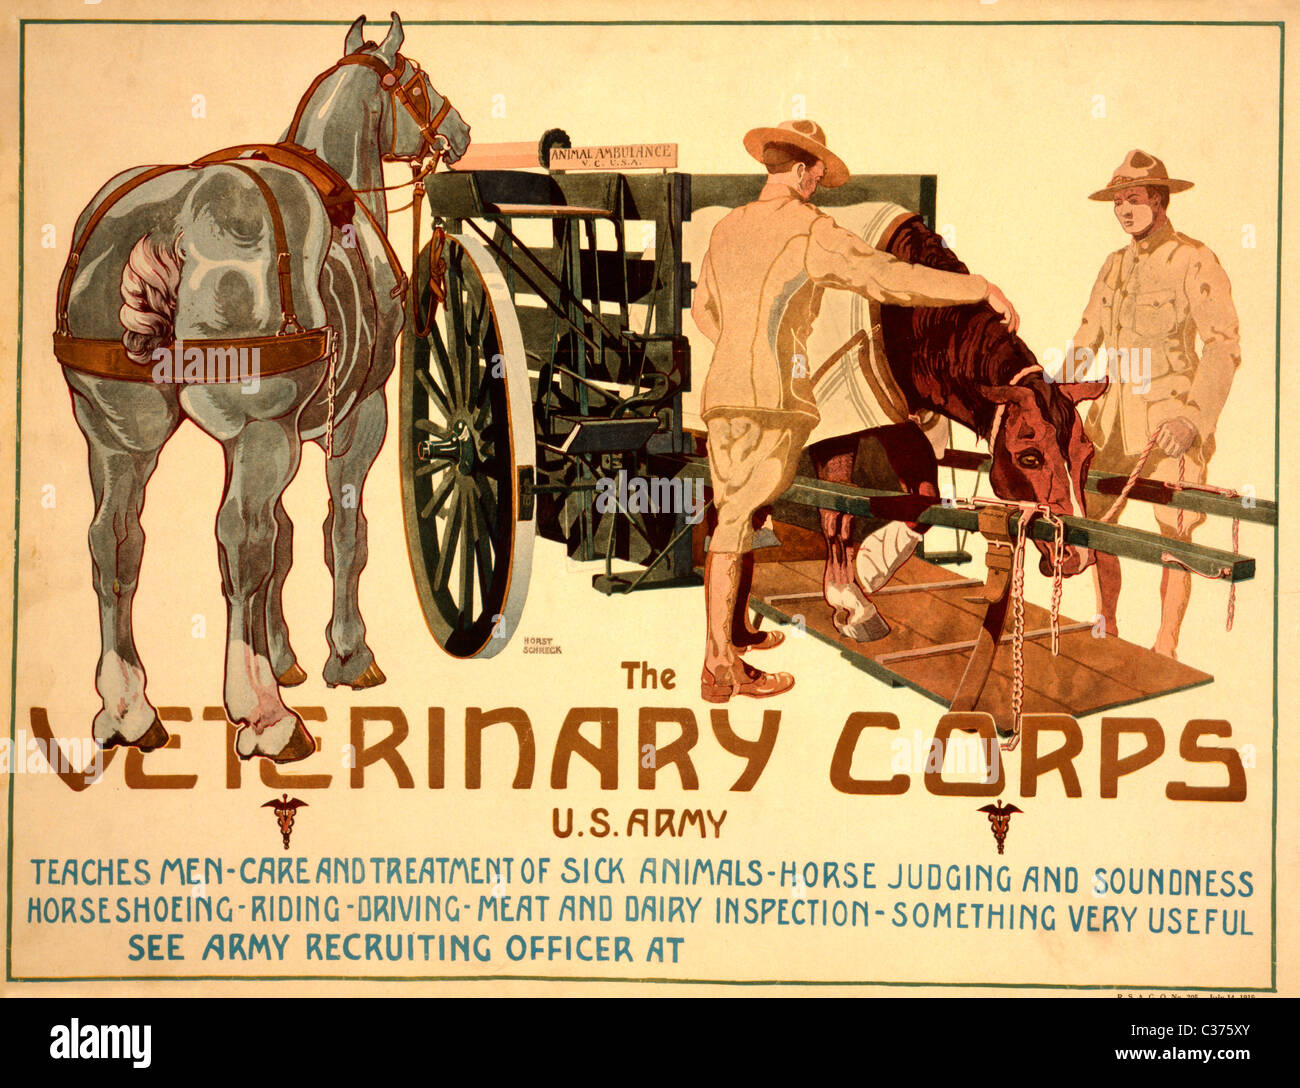 The Veterinary Corps, U.S. Army Recruiting Poster 1919 - Stock Image